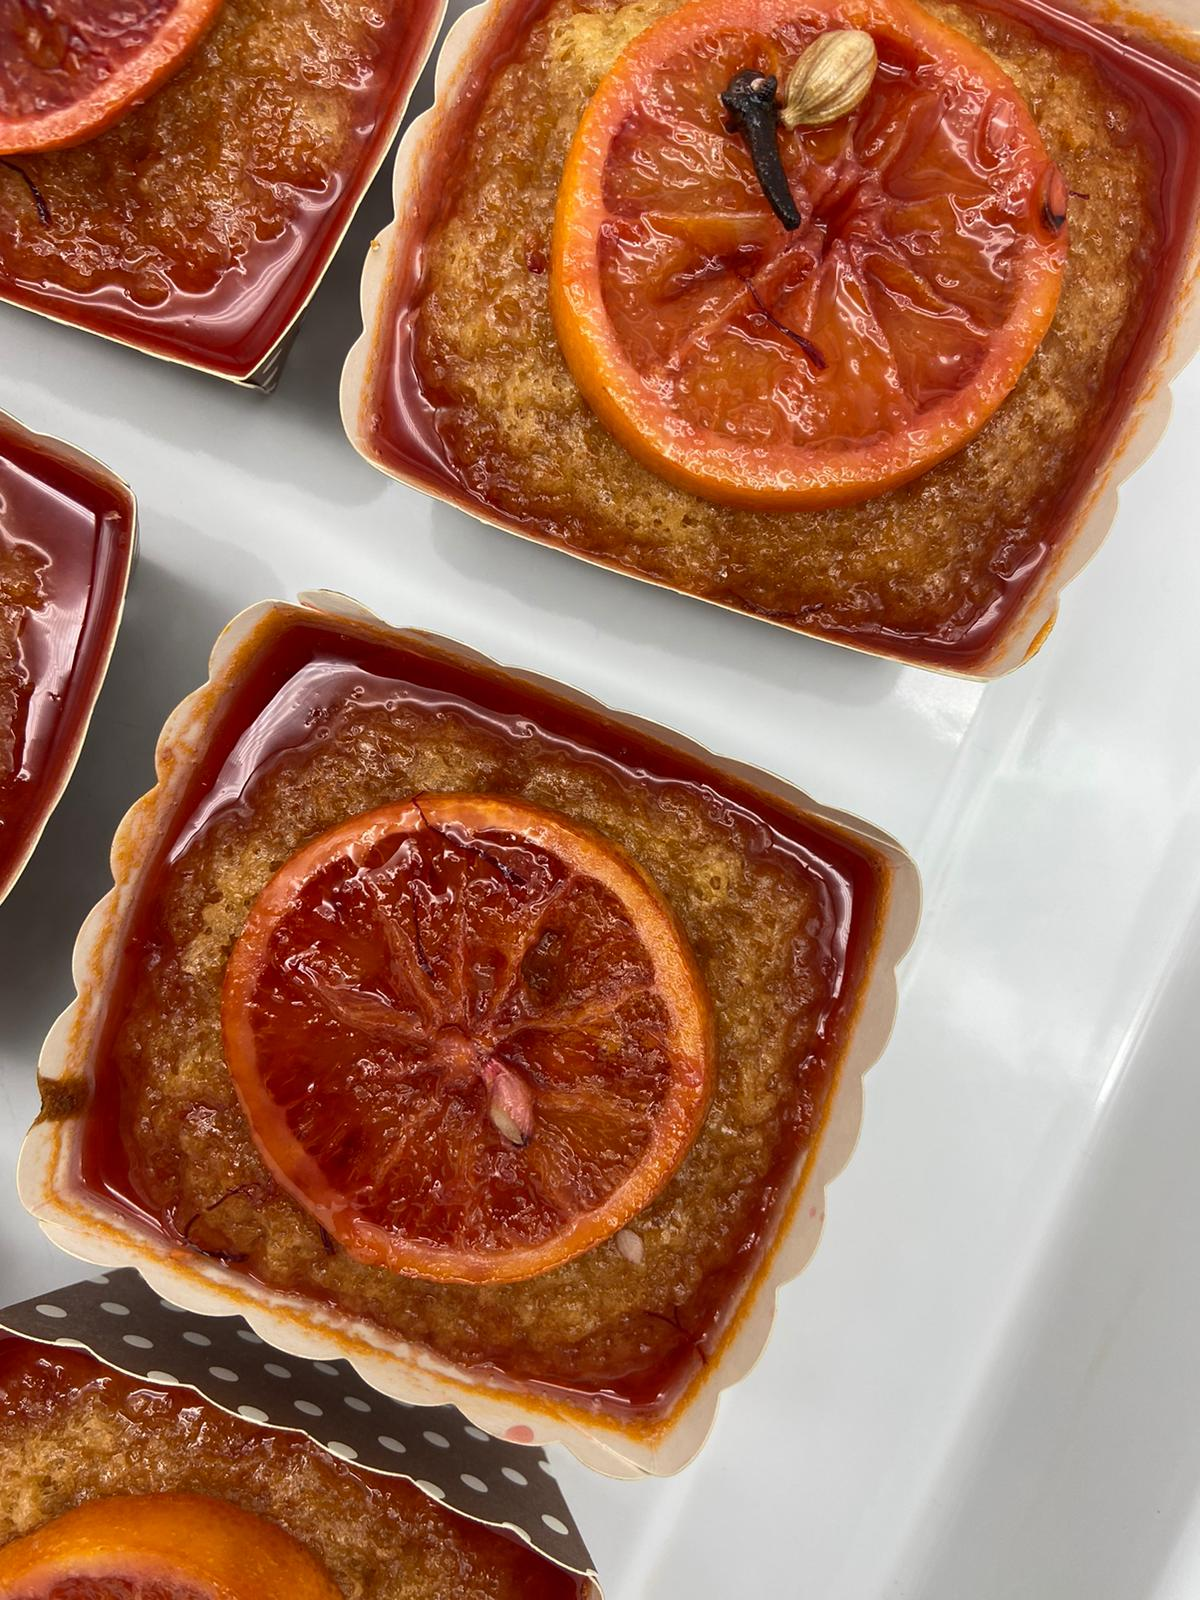 BLOOD ORANGE AND ALMOND CAKE